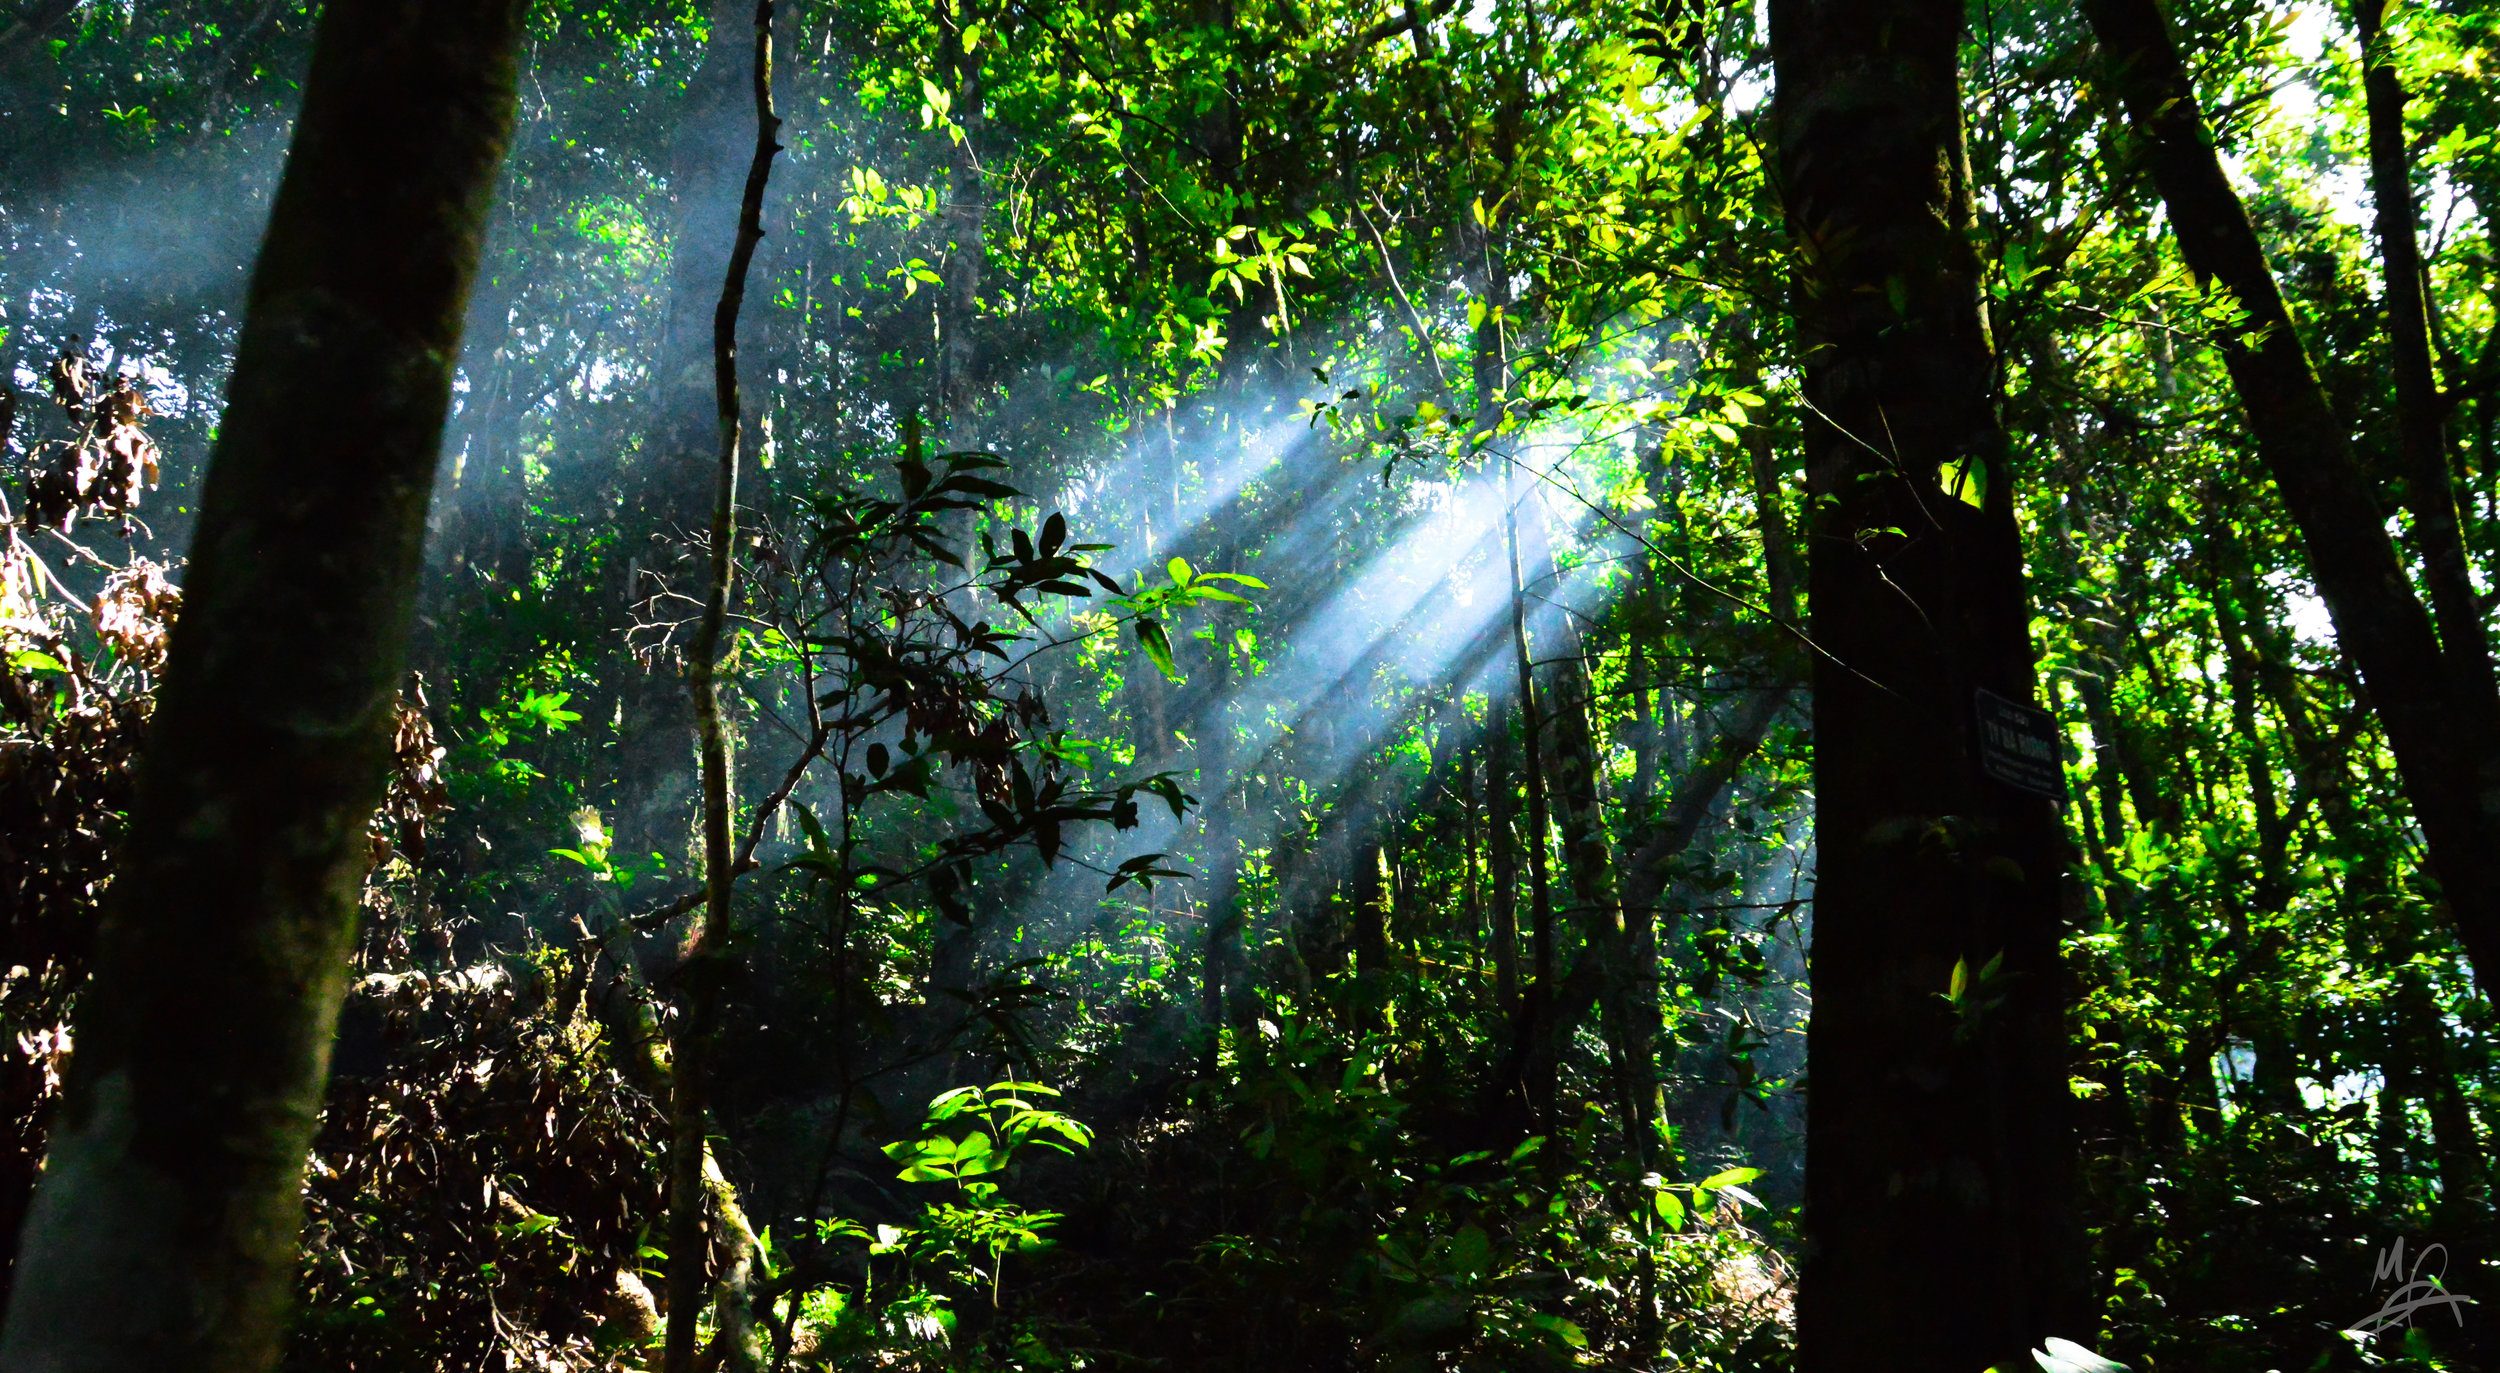 Rays spear the forest